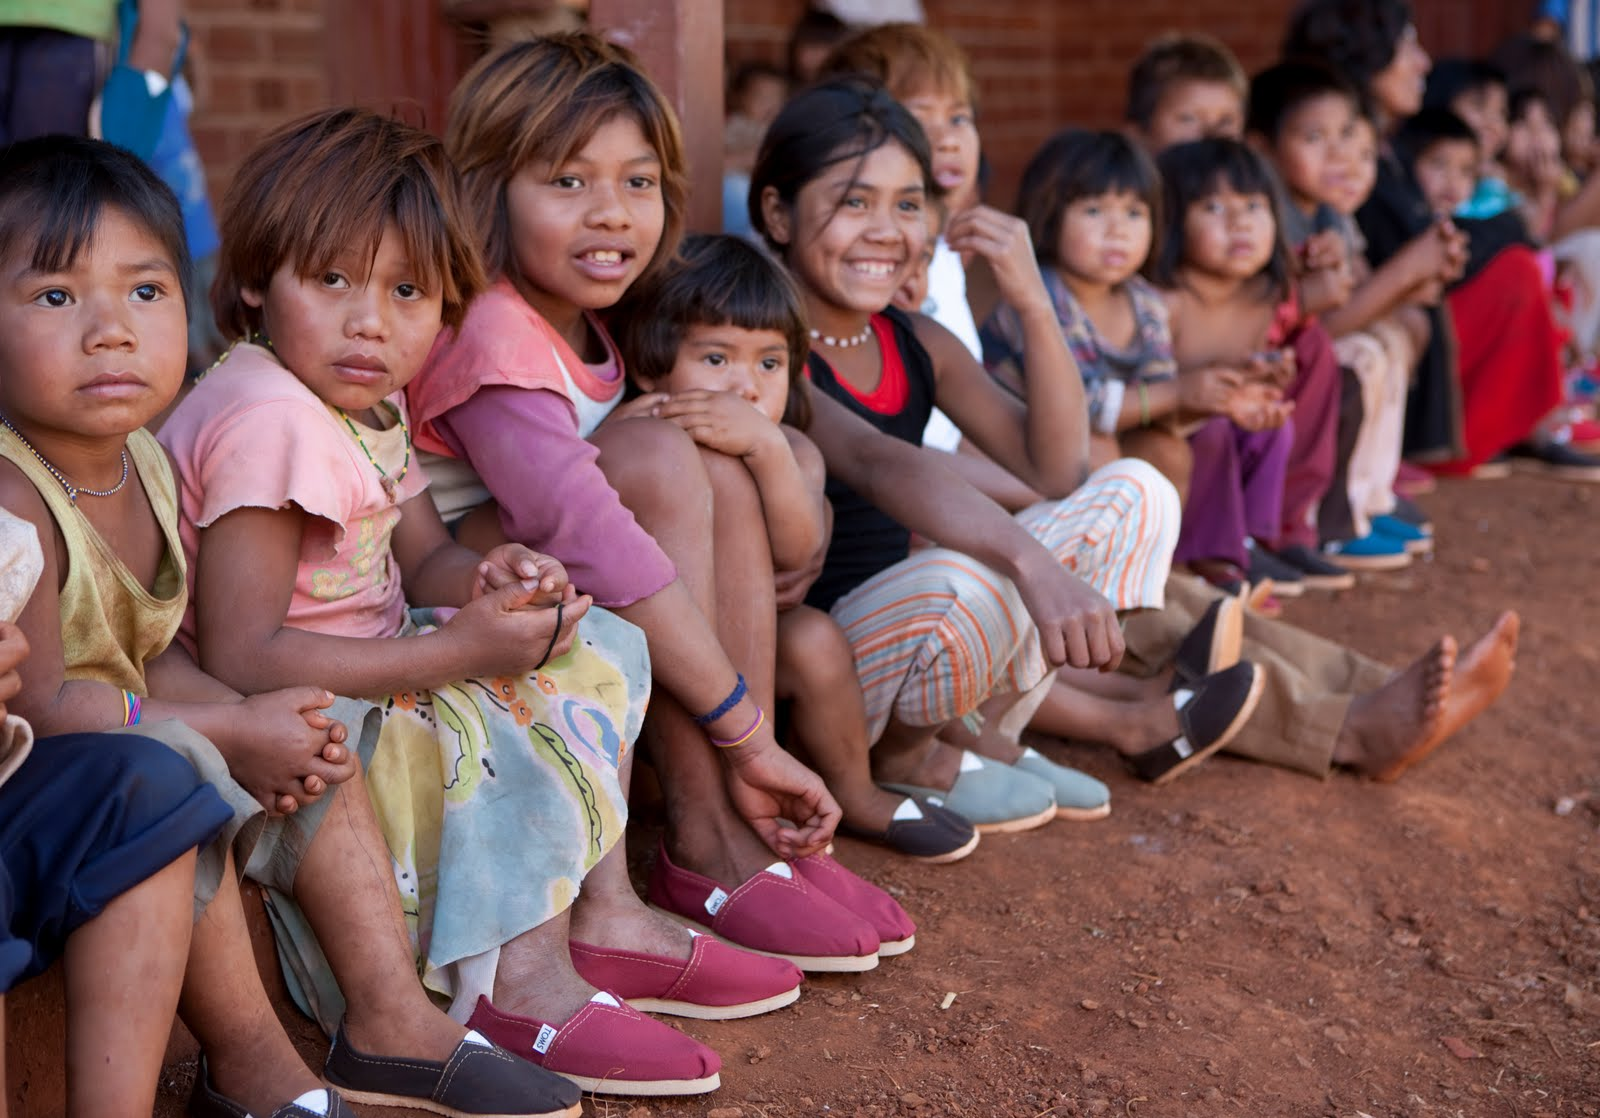 children with colored shoes